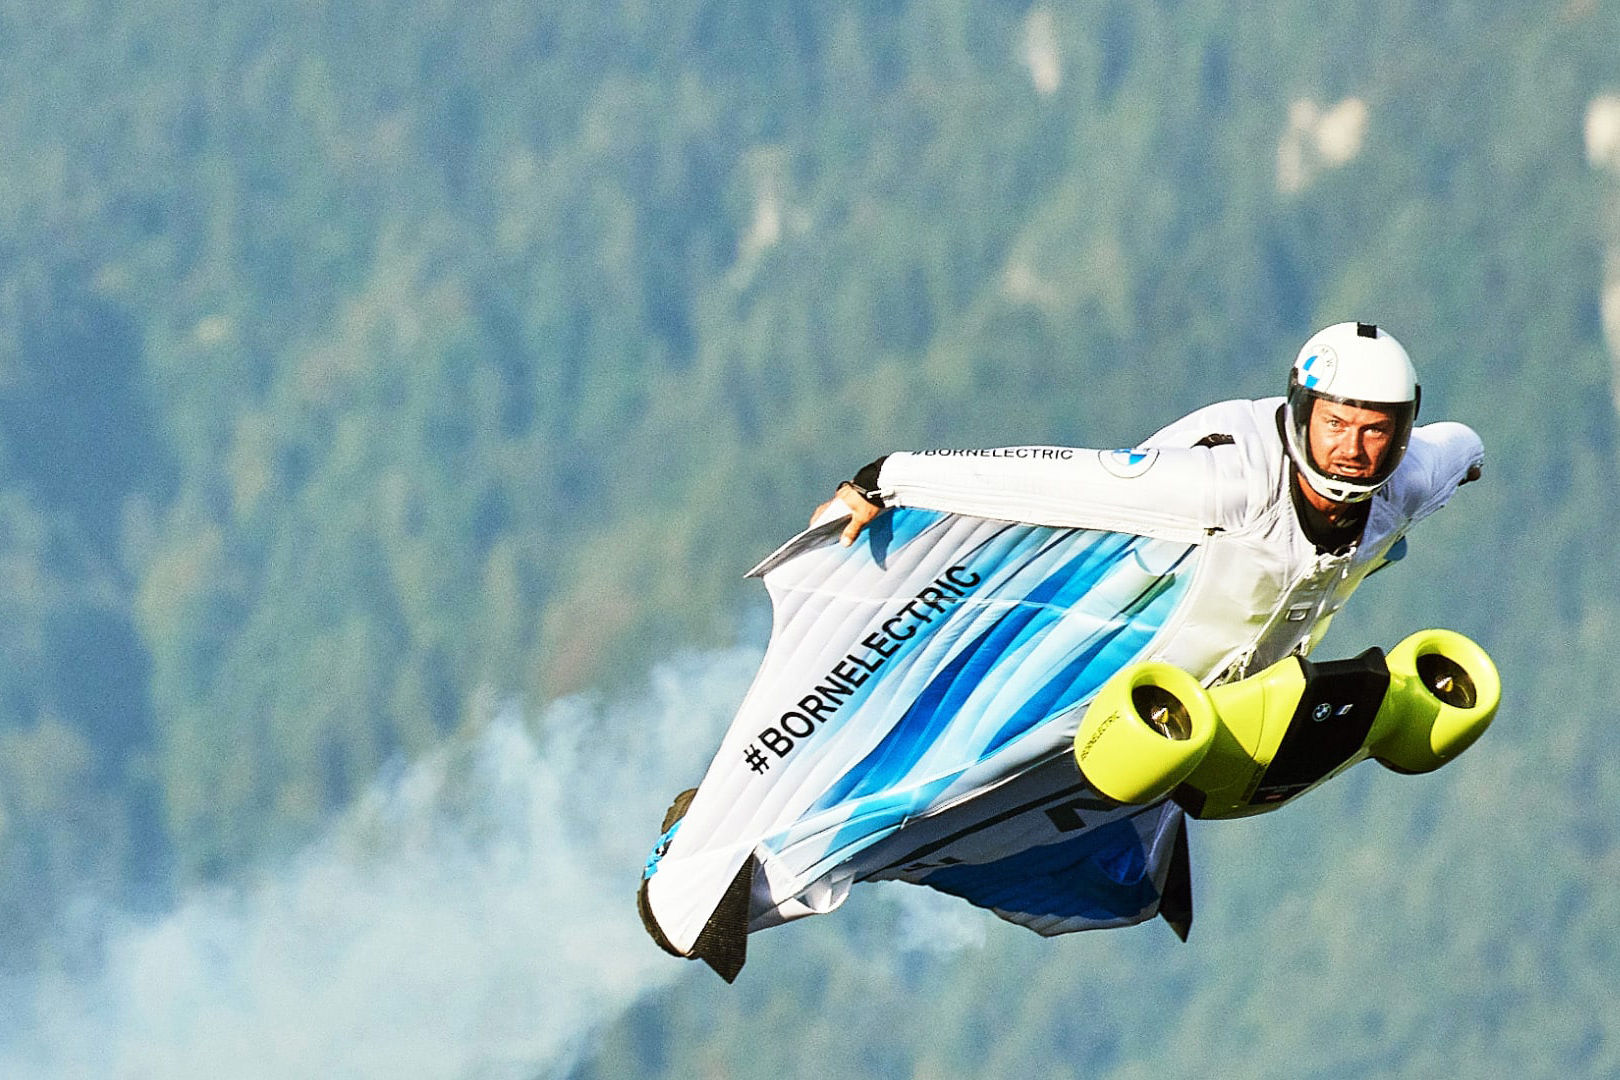 BMW electric wingsuit Stefan Salzmann